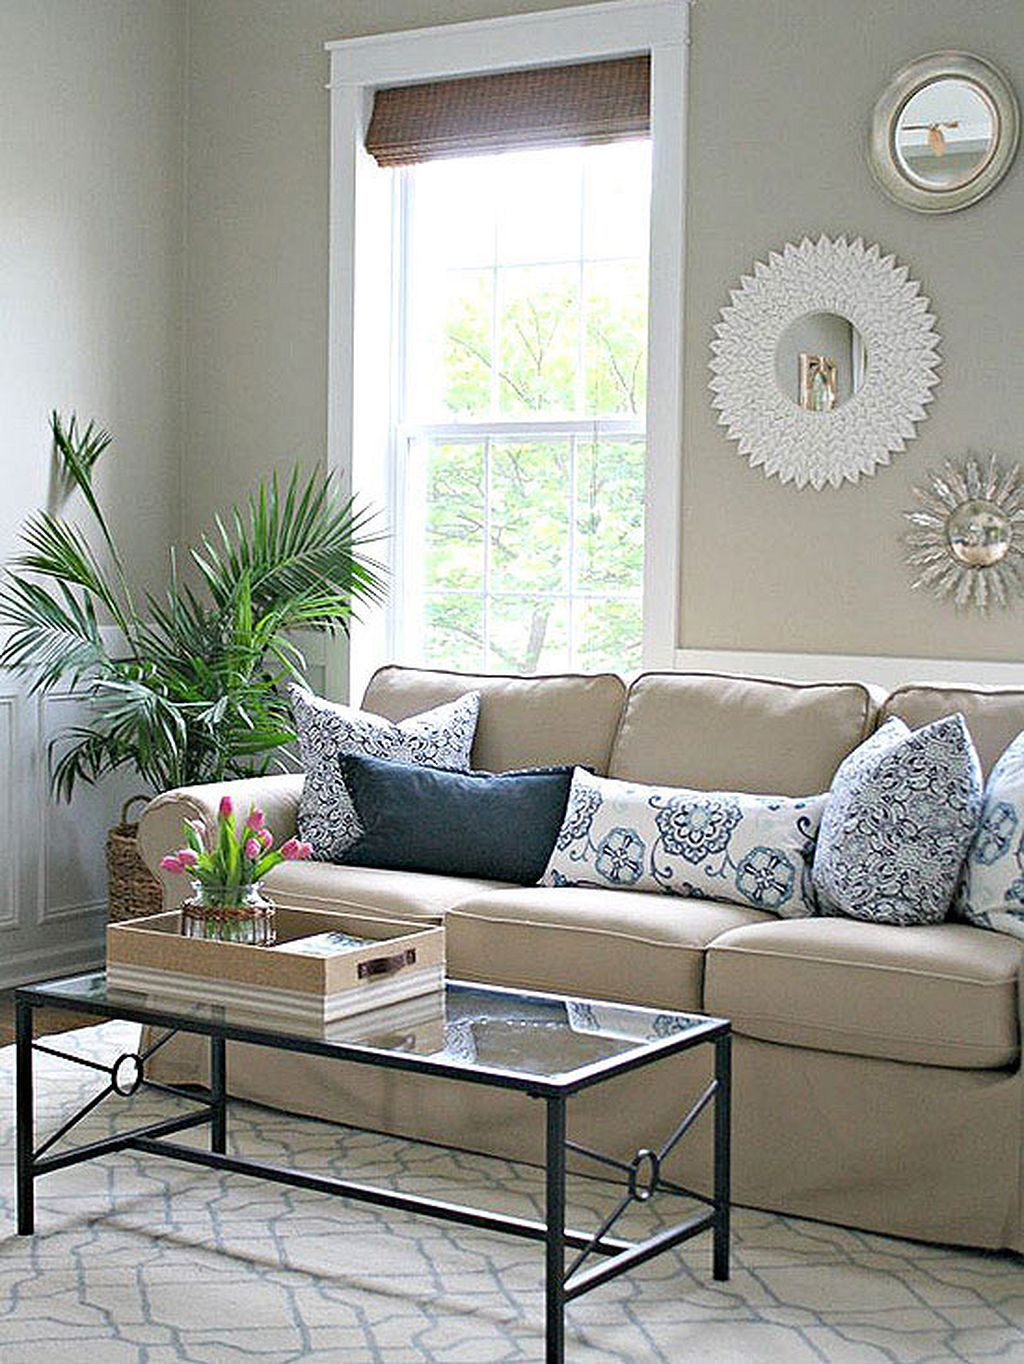 Gorgeous 15 Affordable Living Room Design Ideas on a Budget You ...